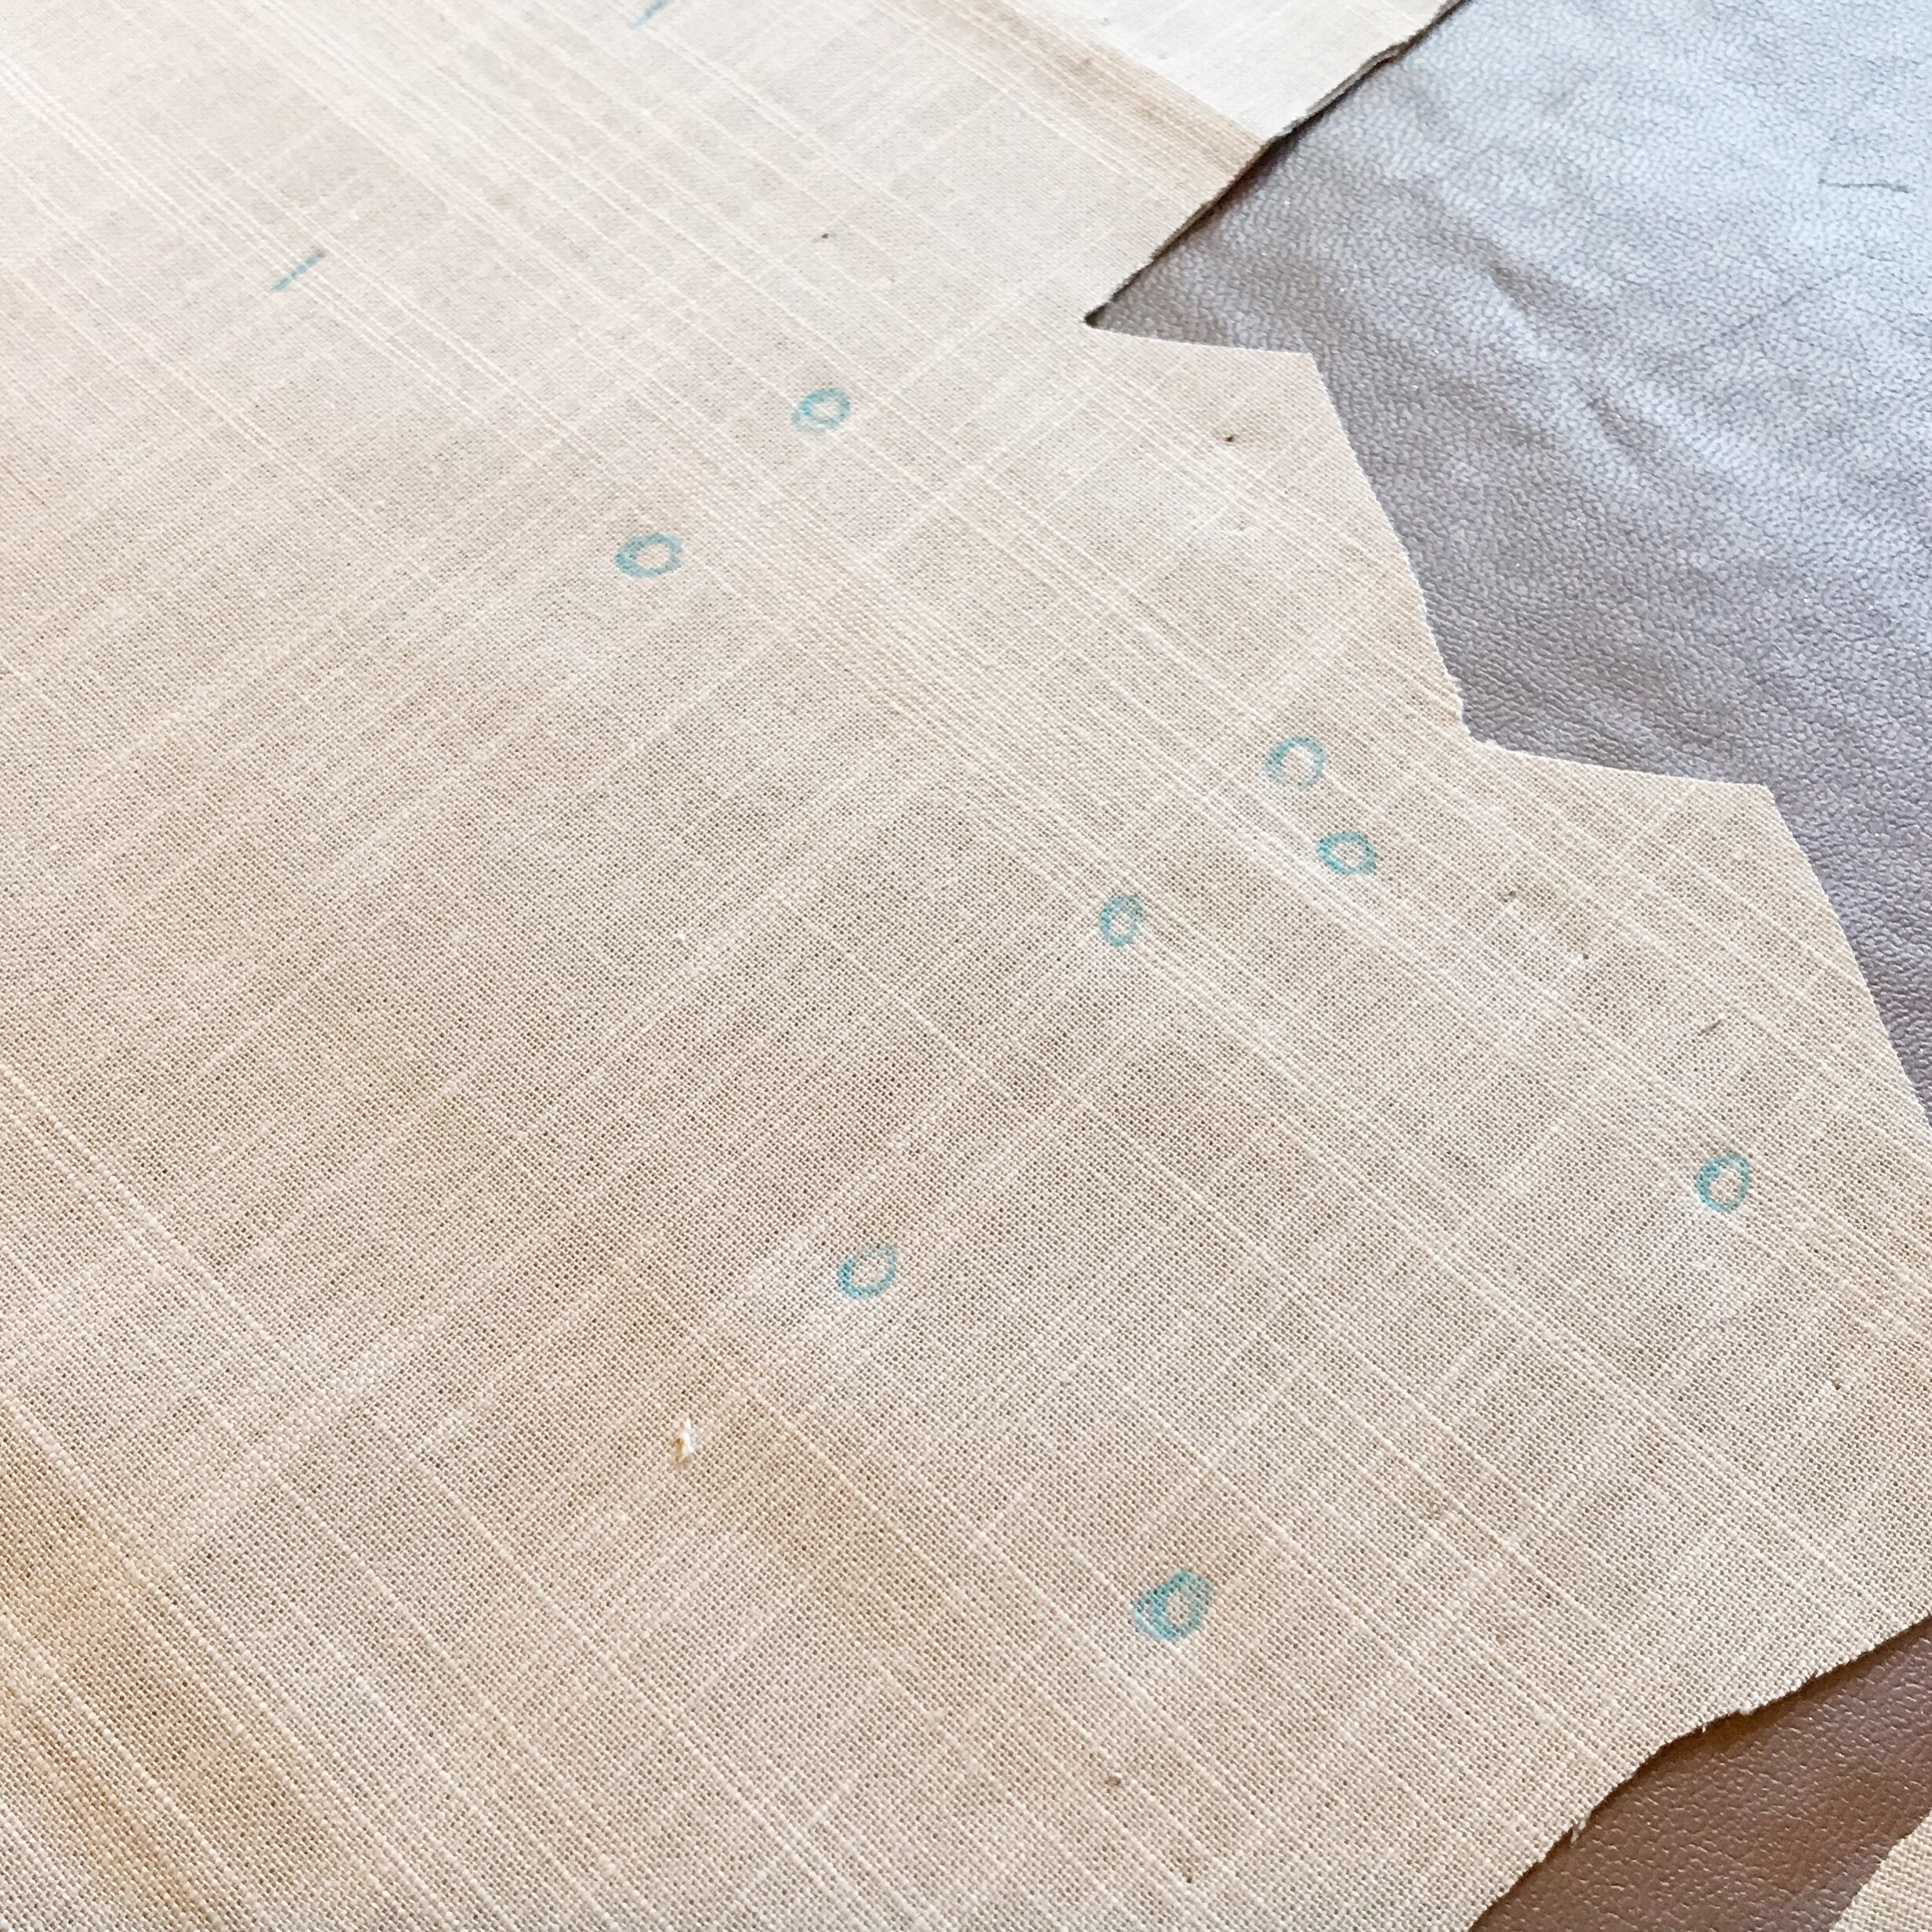 Transferring all those marks - The ones pictured there were for the pleats the top of the bodice